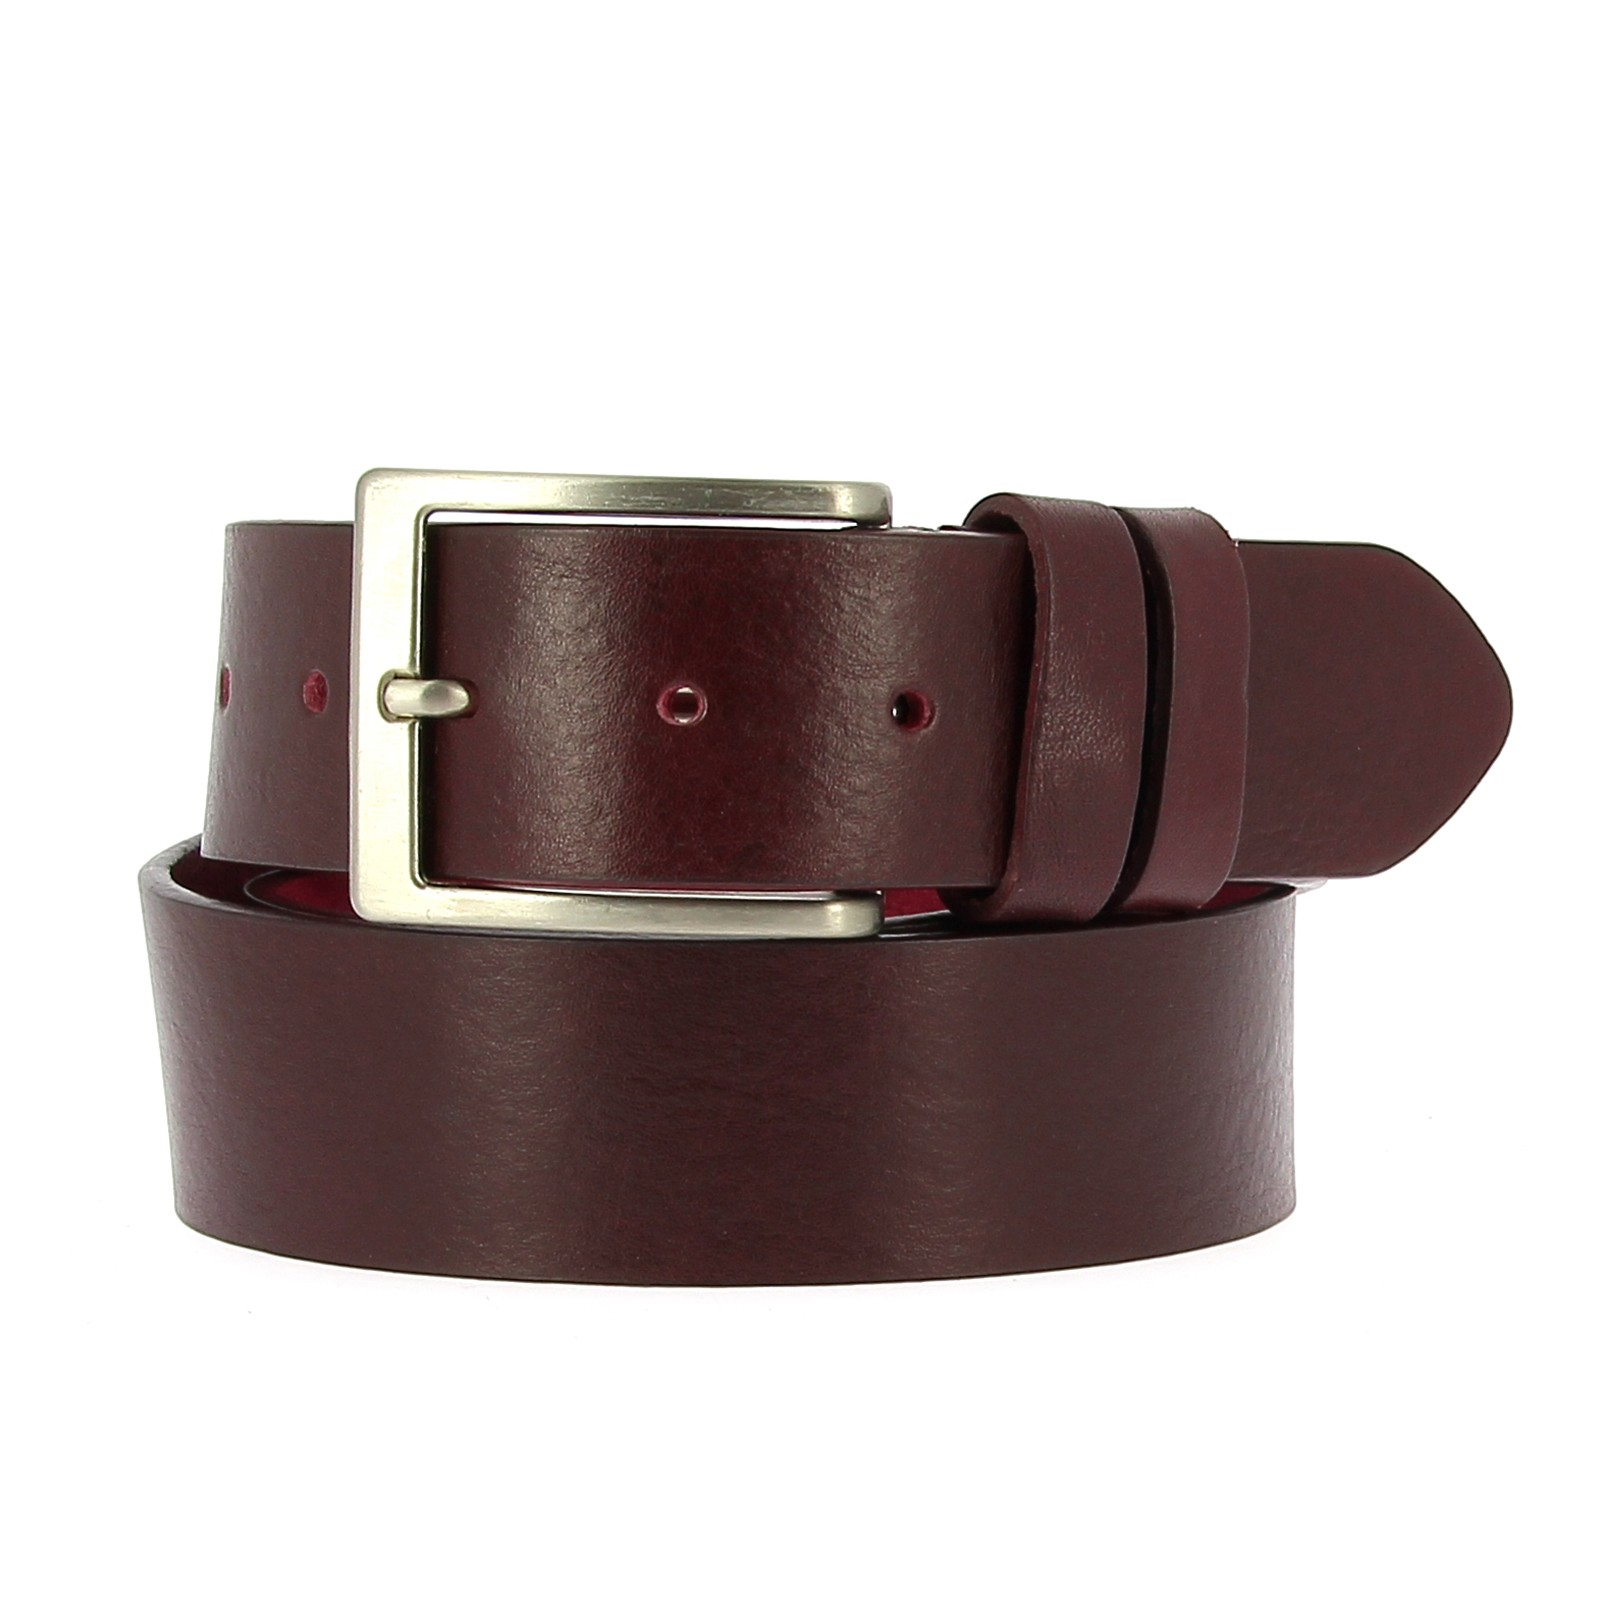 Belts Leather 40mm 130cm Jean Campari